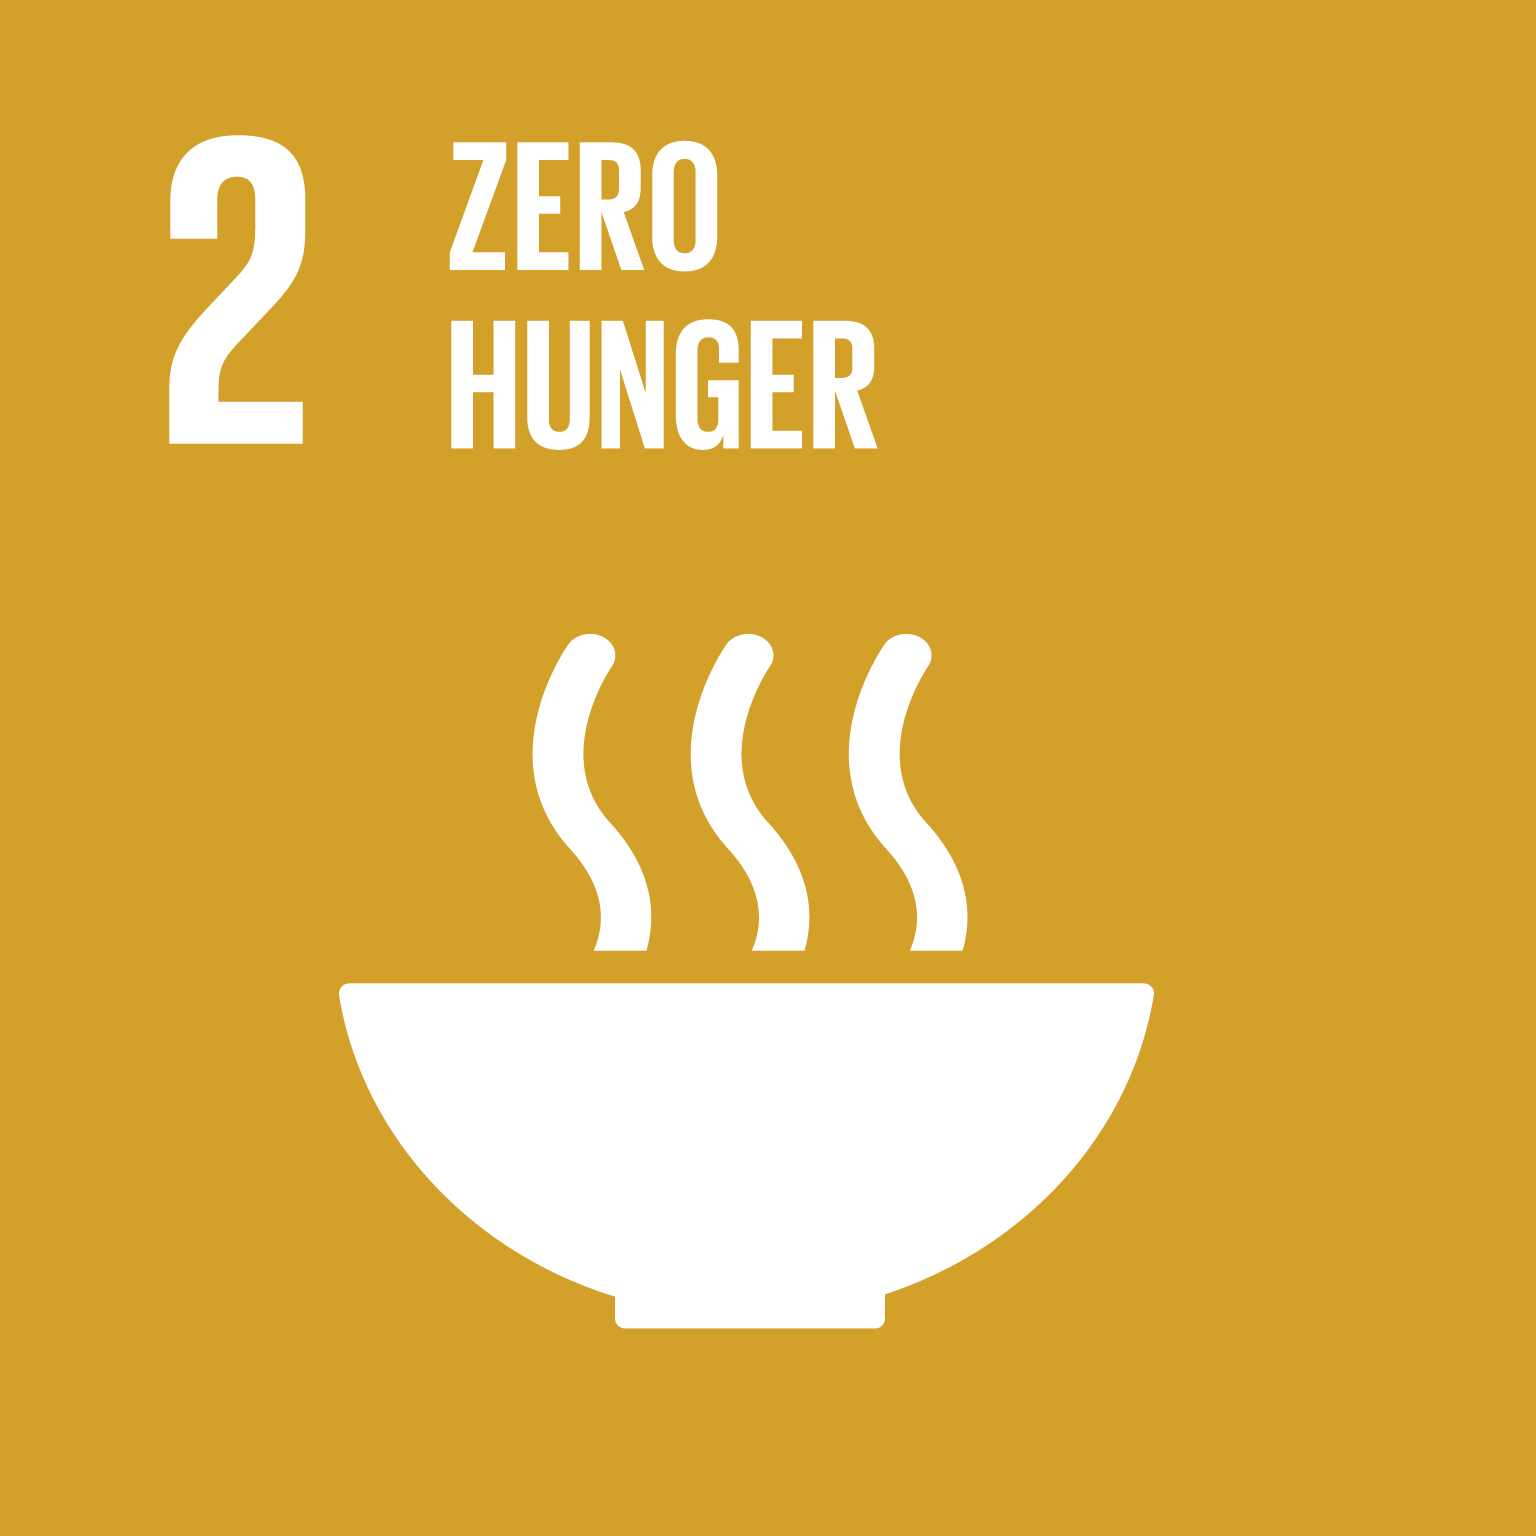 An image of UN Sustainable Development Goal 2